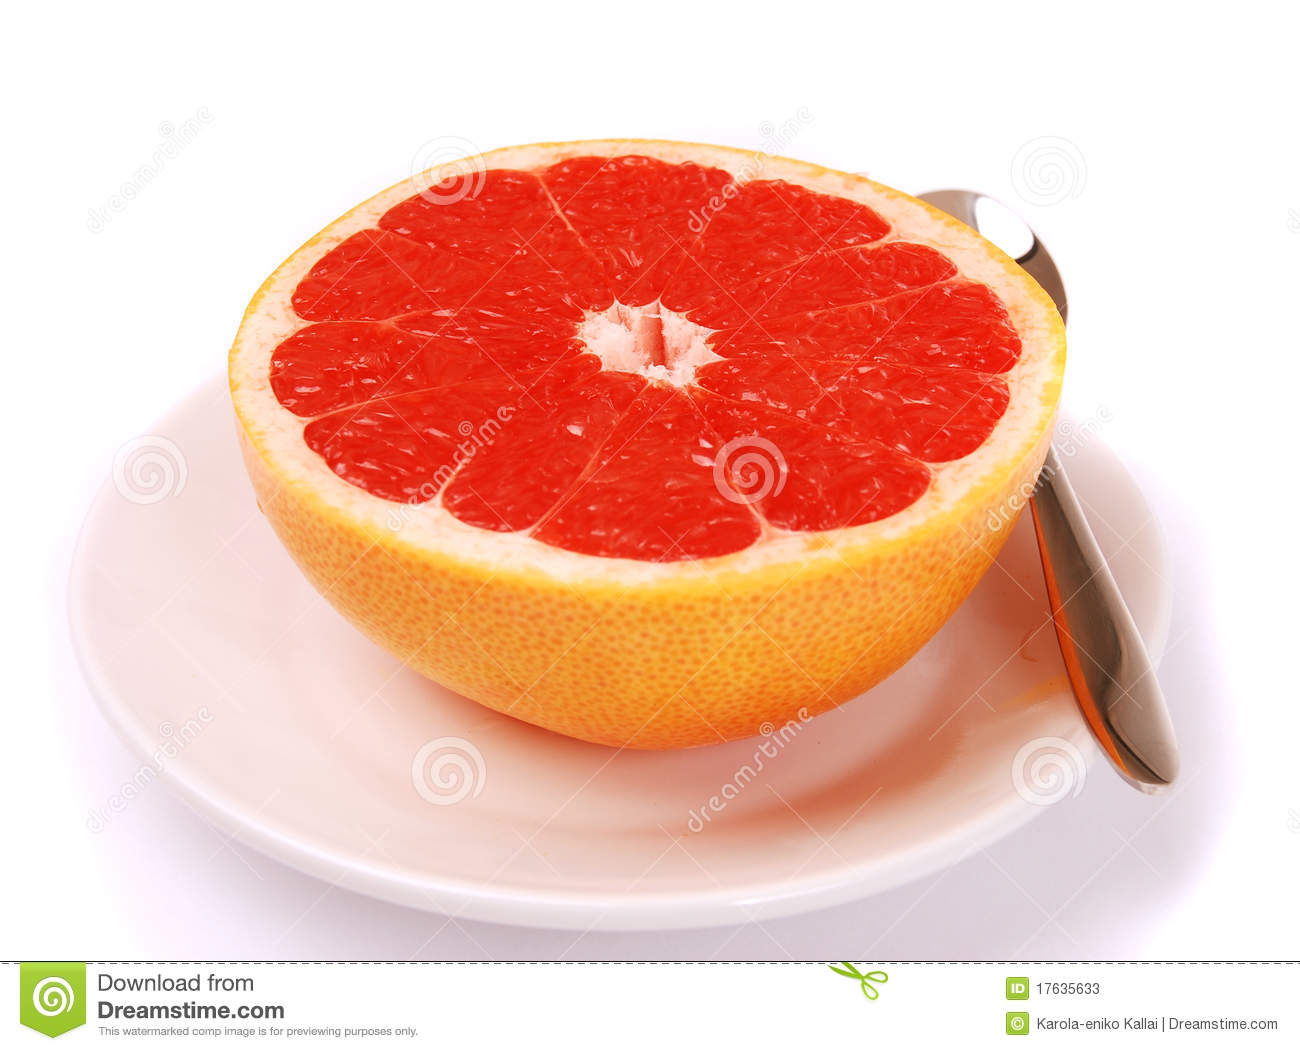 how to serve grapefruit for breakfast